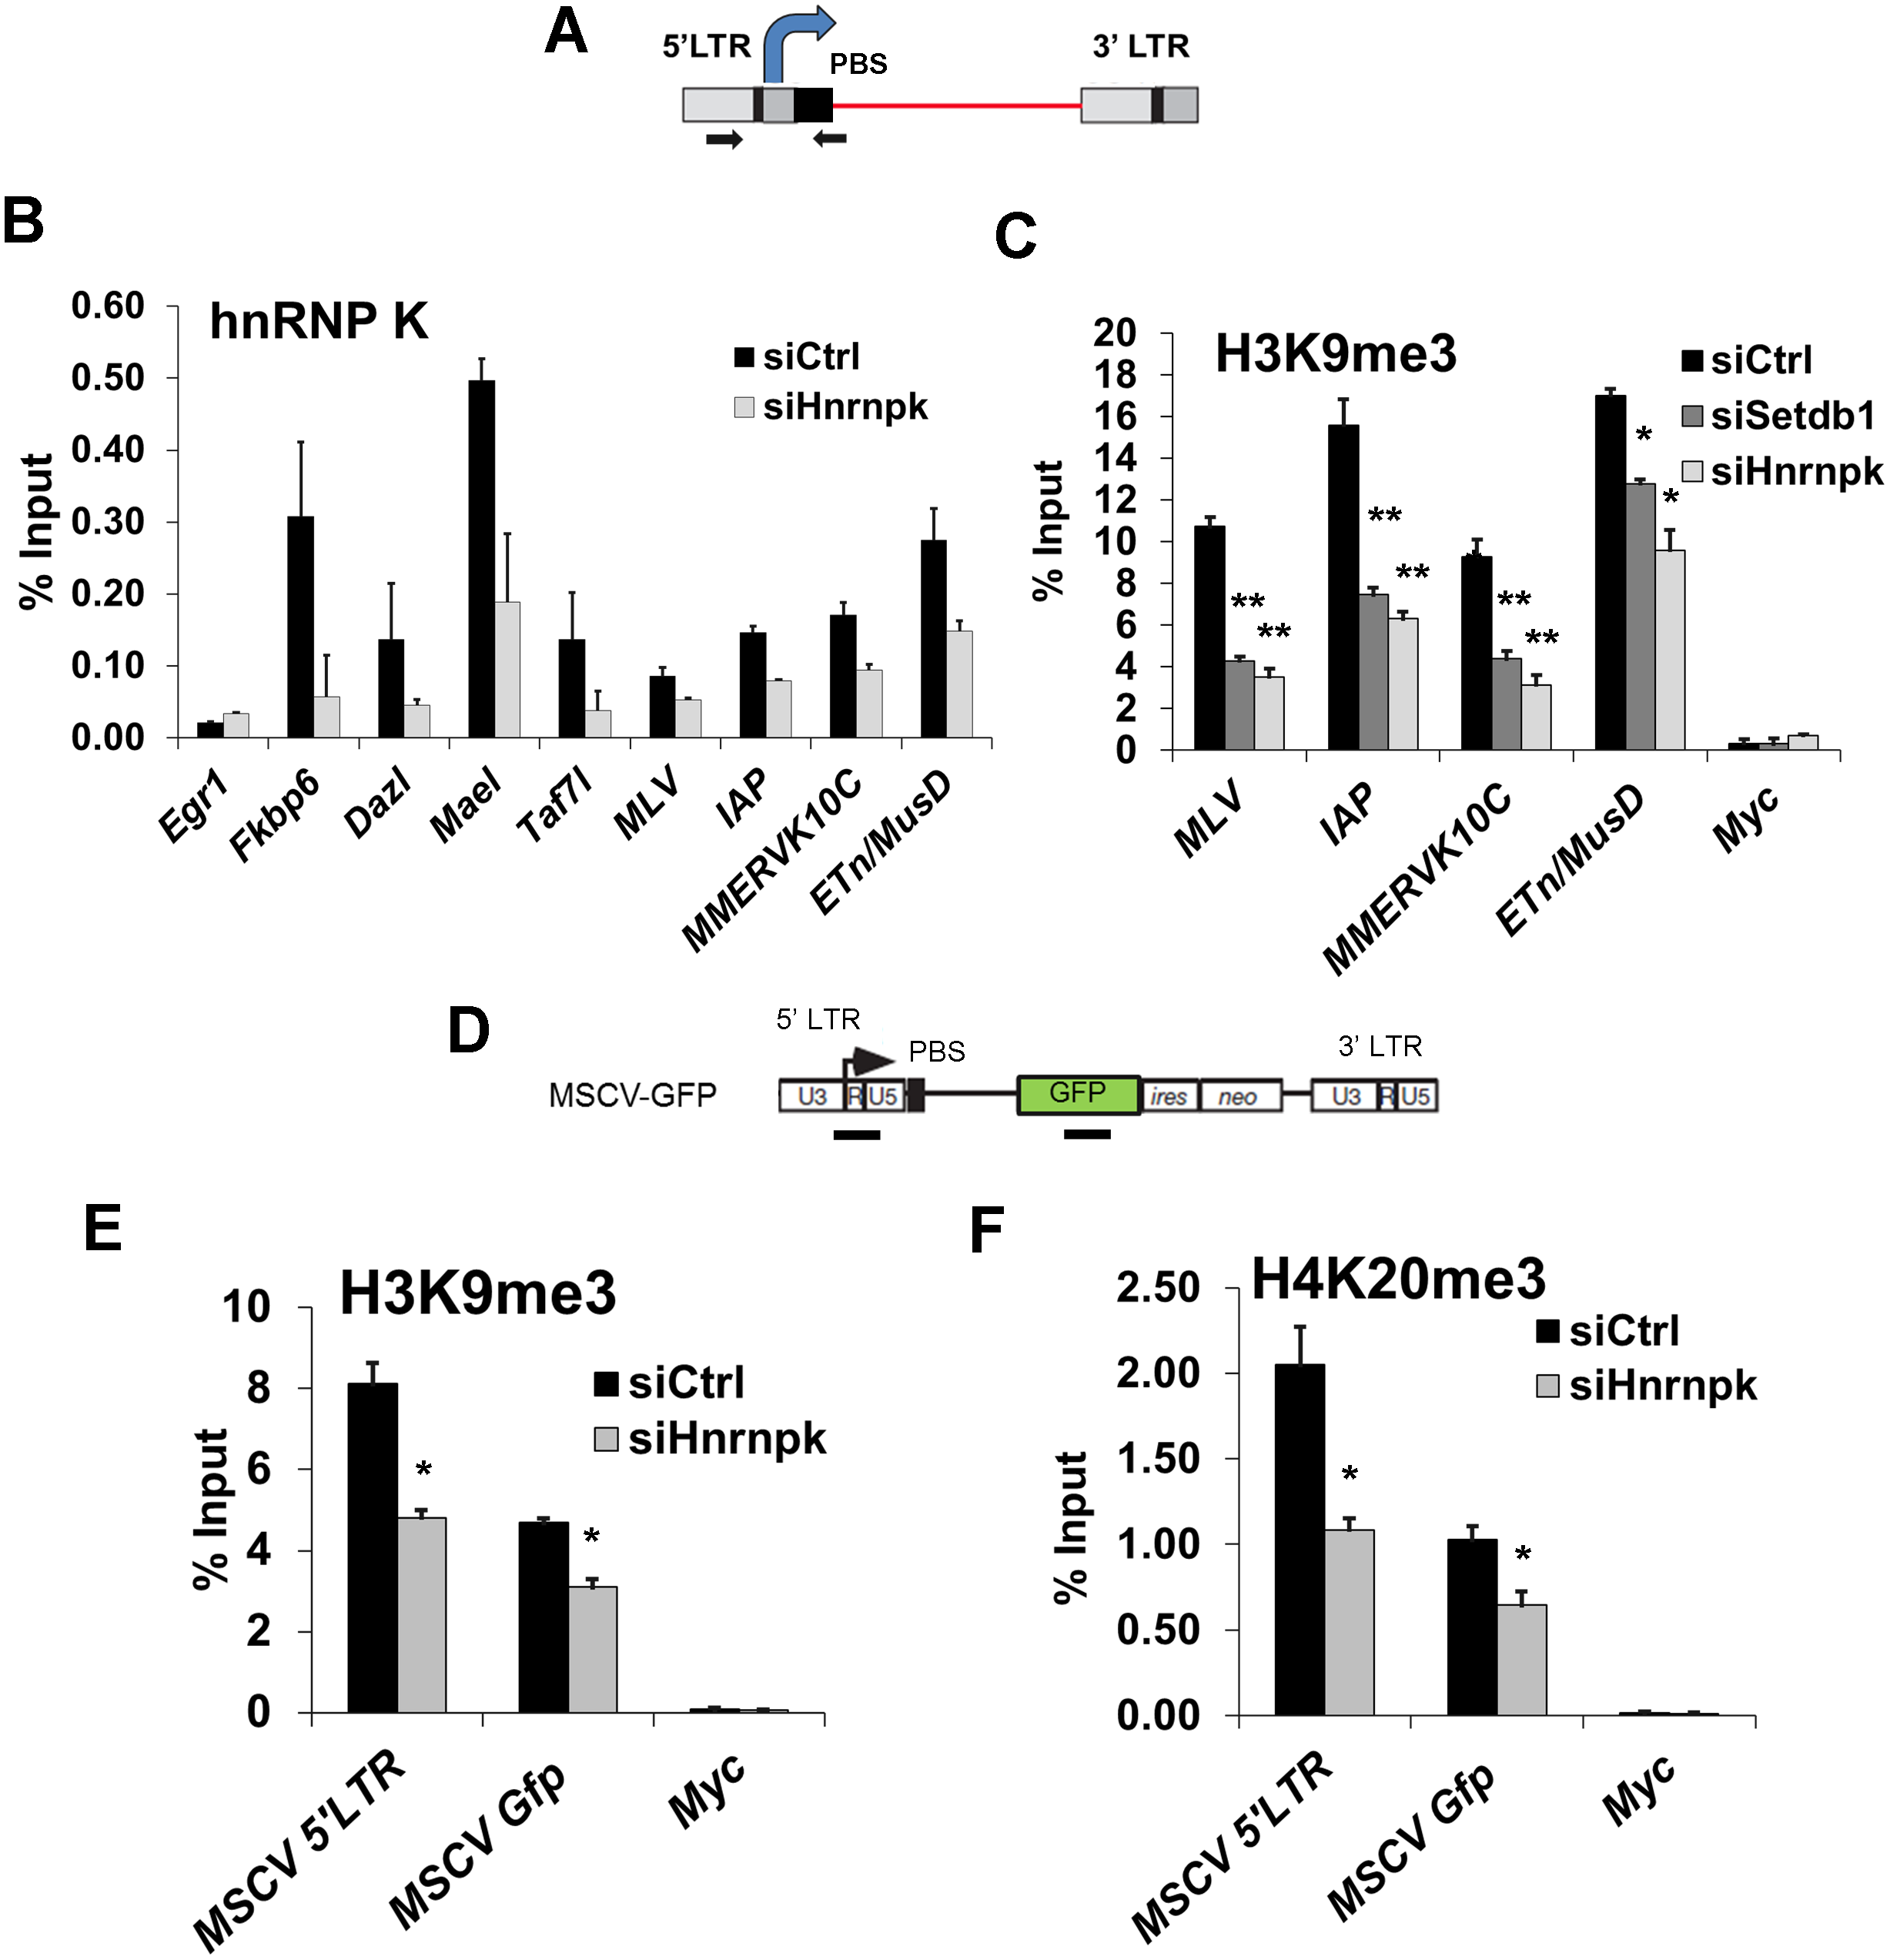 hnRNP K is bound at ERVs and is required for H3K9me3 deposition at proviral chromatin.